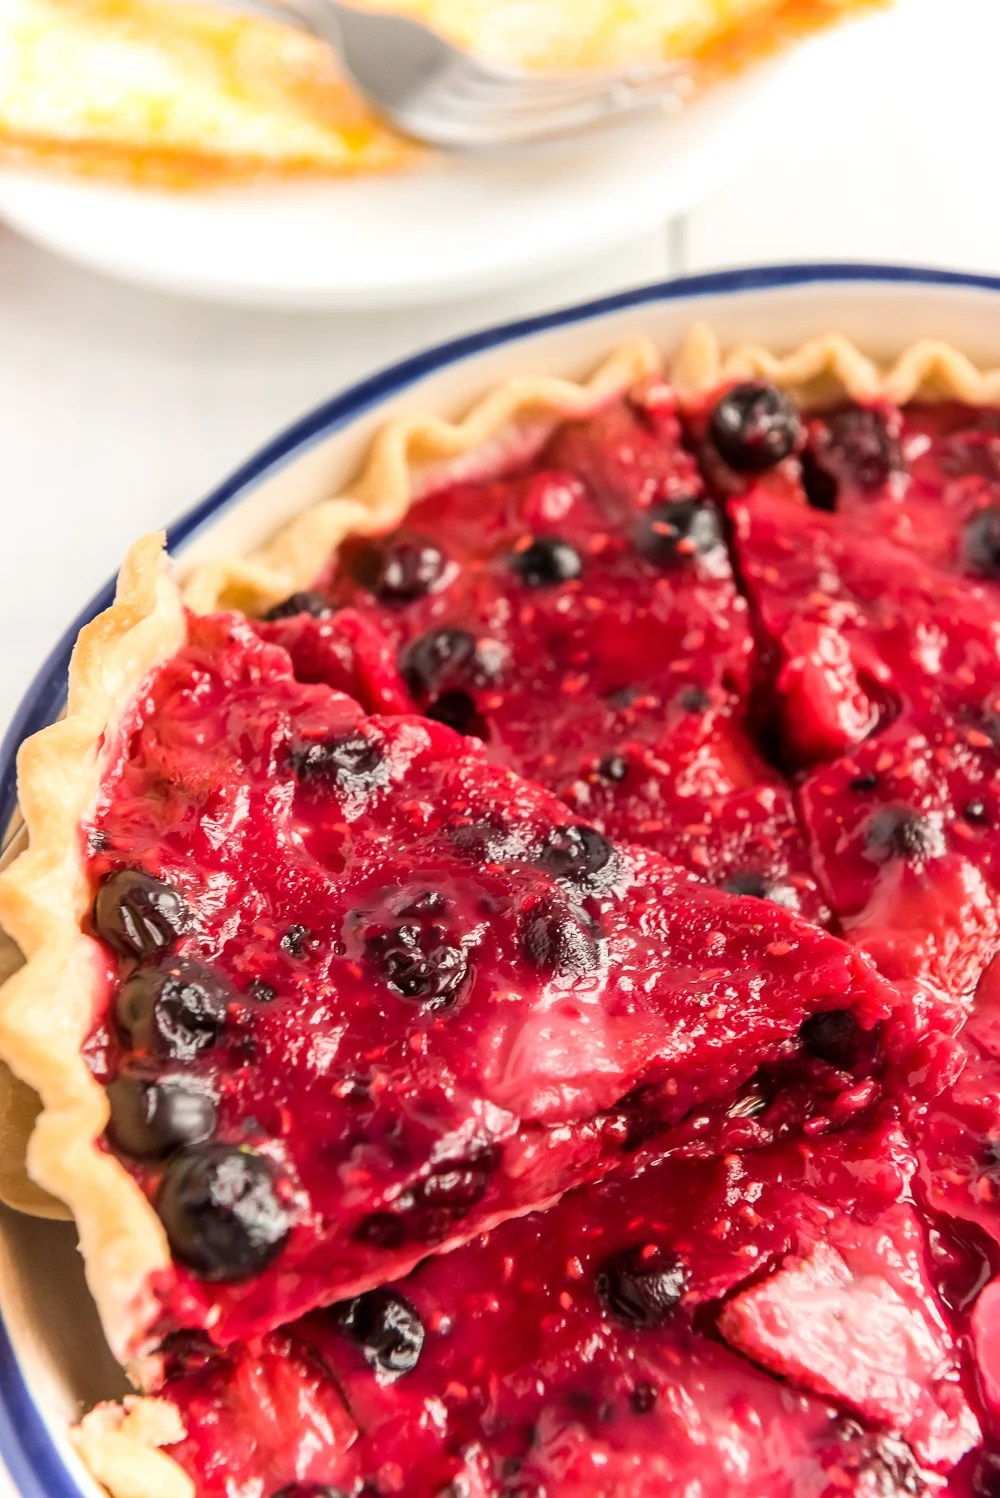 Slice of Mixed Berry Pie being pulled from a whole pie.